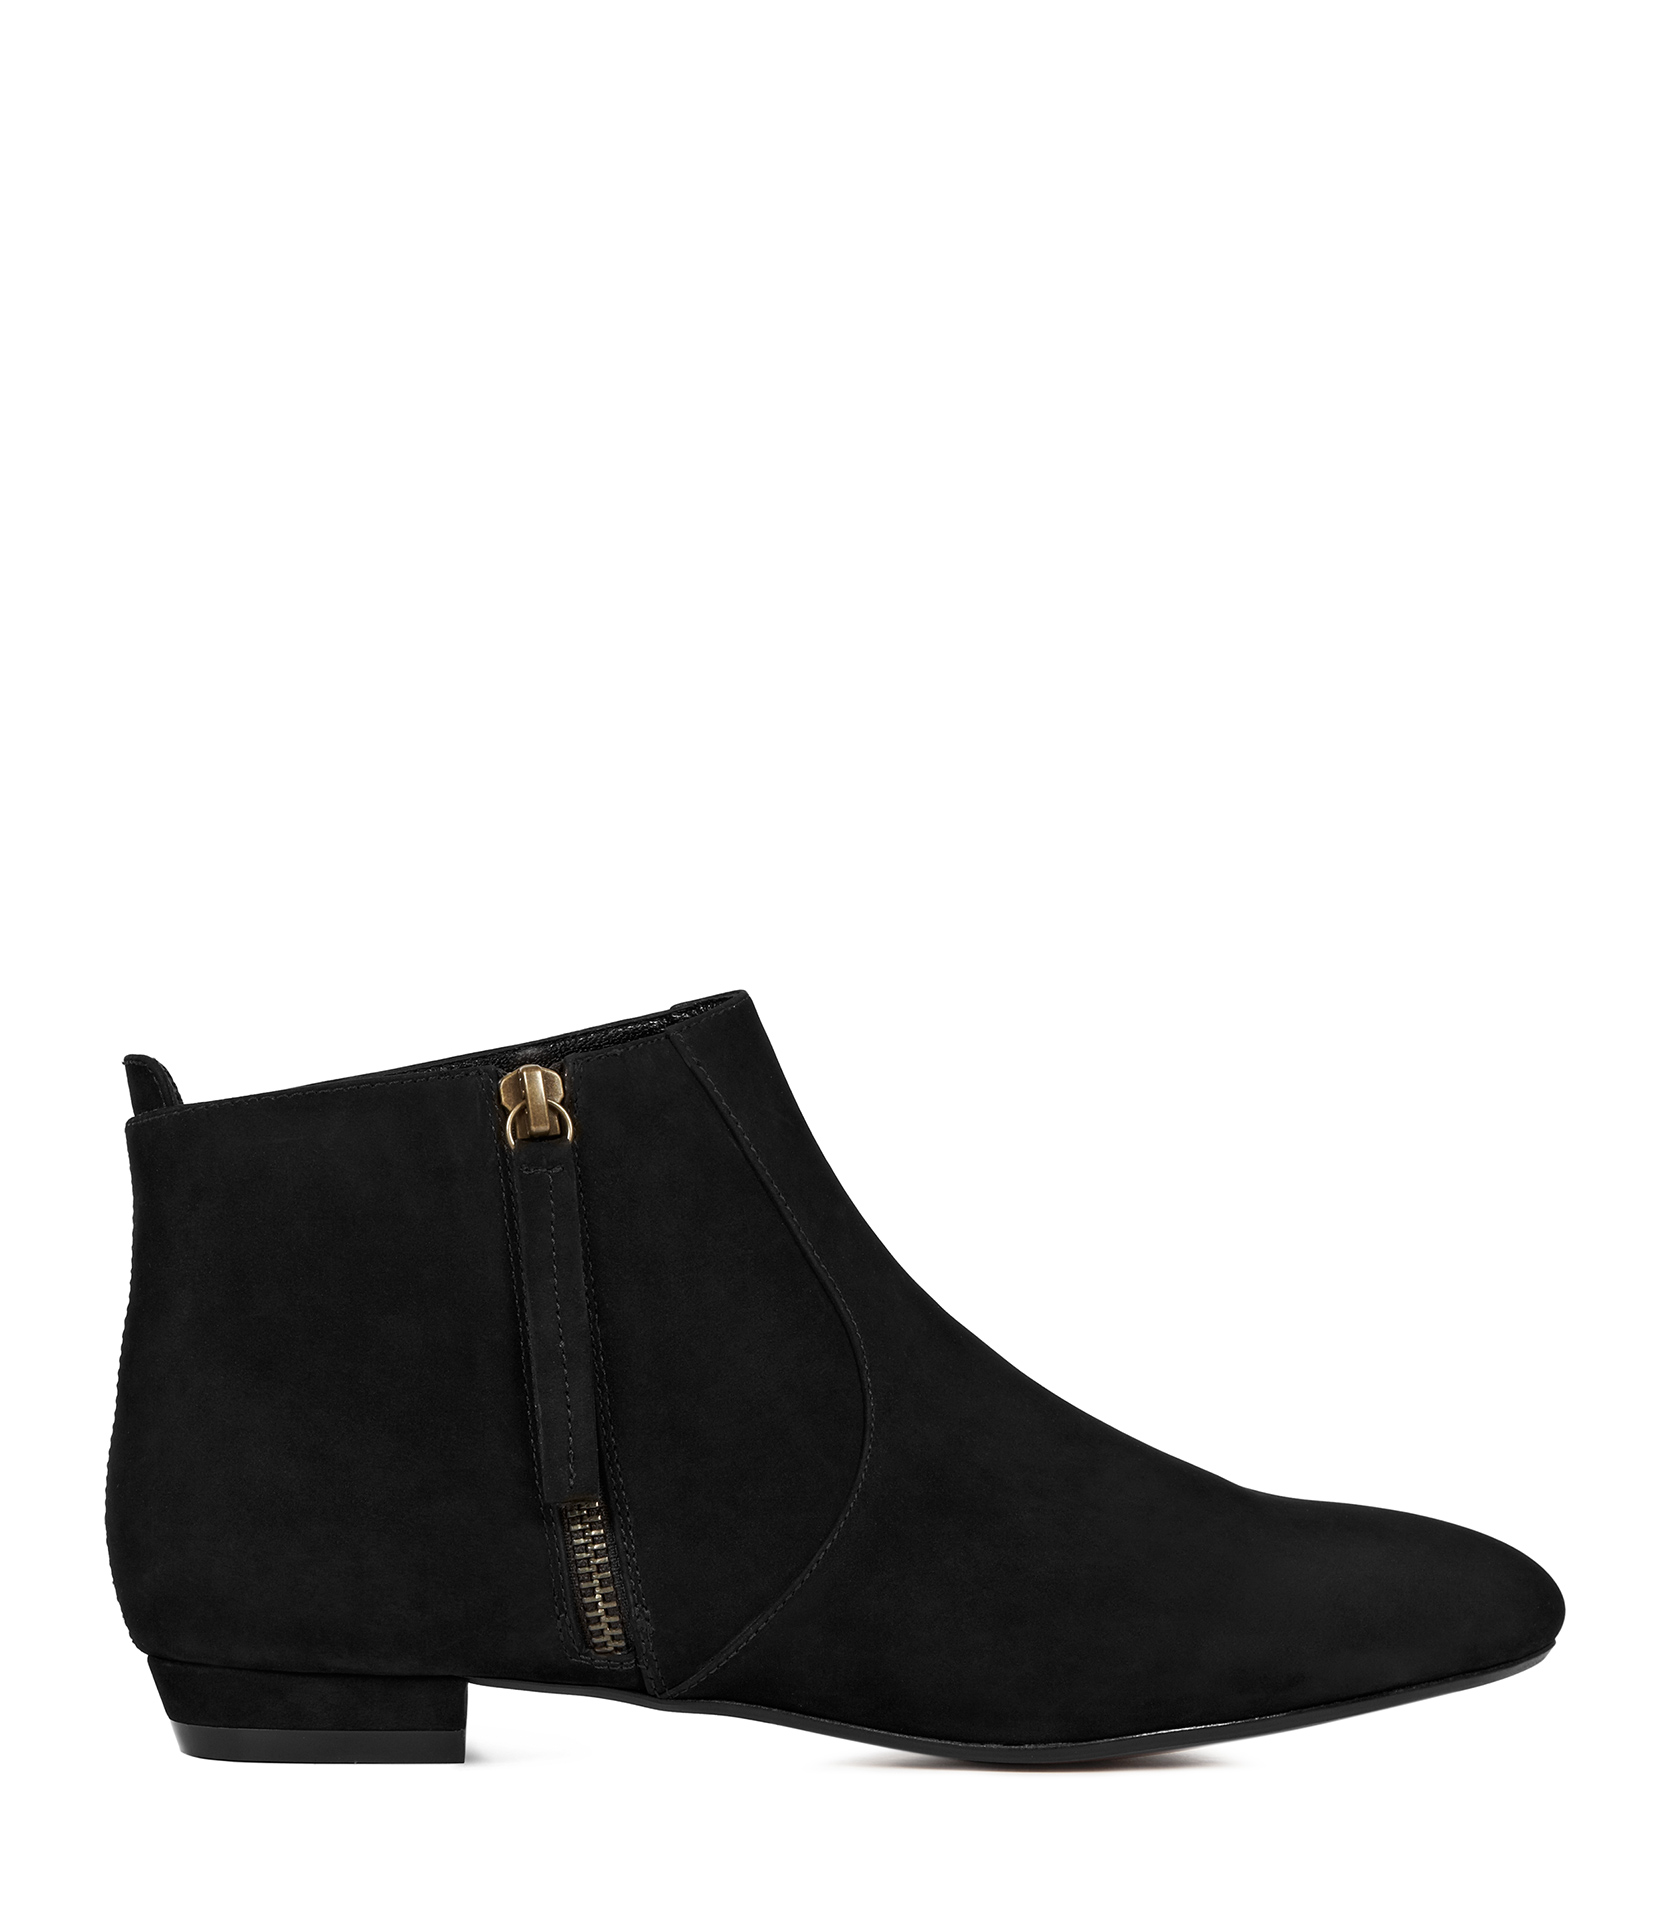 Reiss Lara Zip Up Denim Flat Ankle Boot In Black Lyst